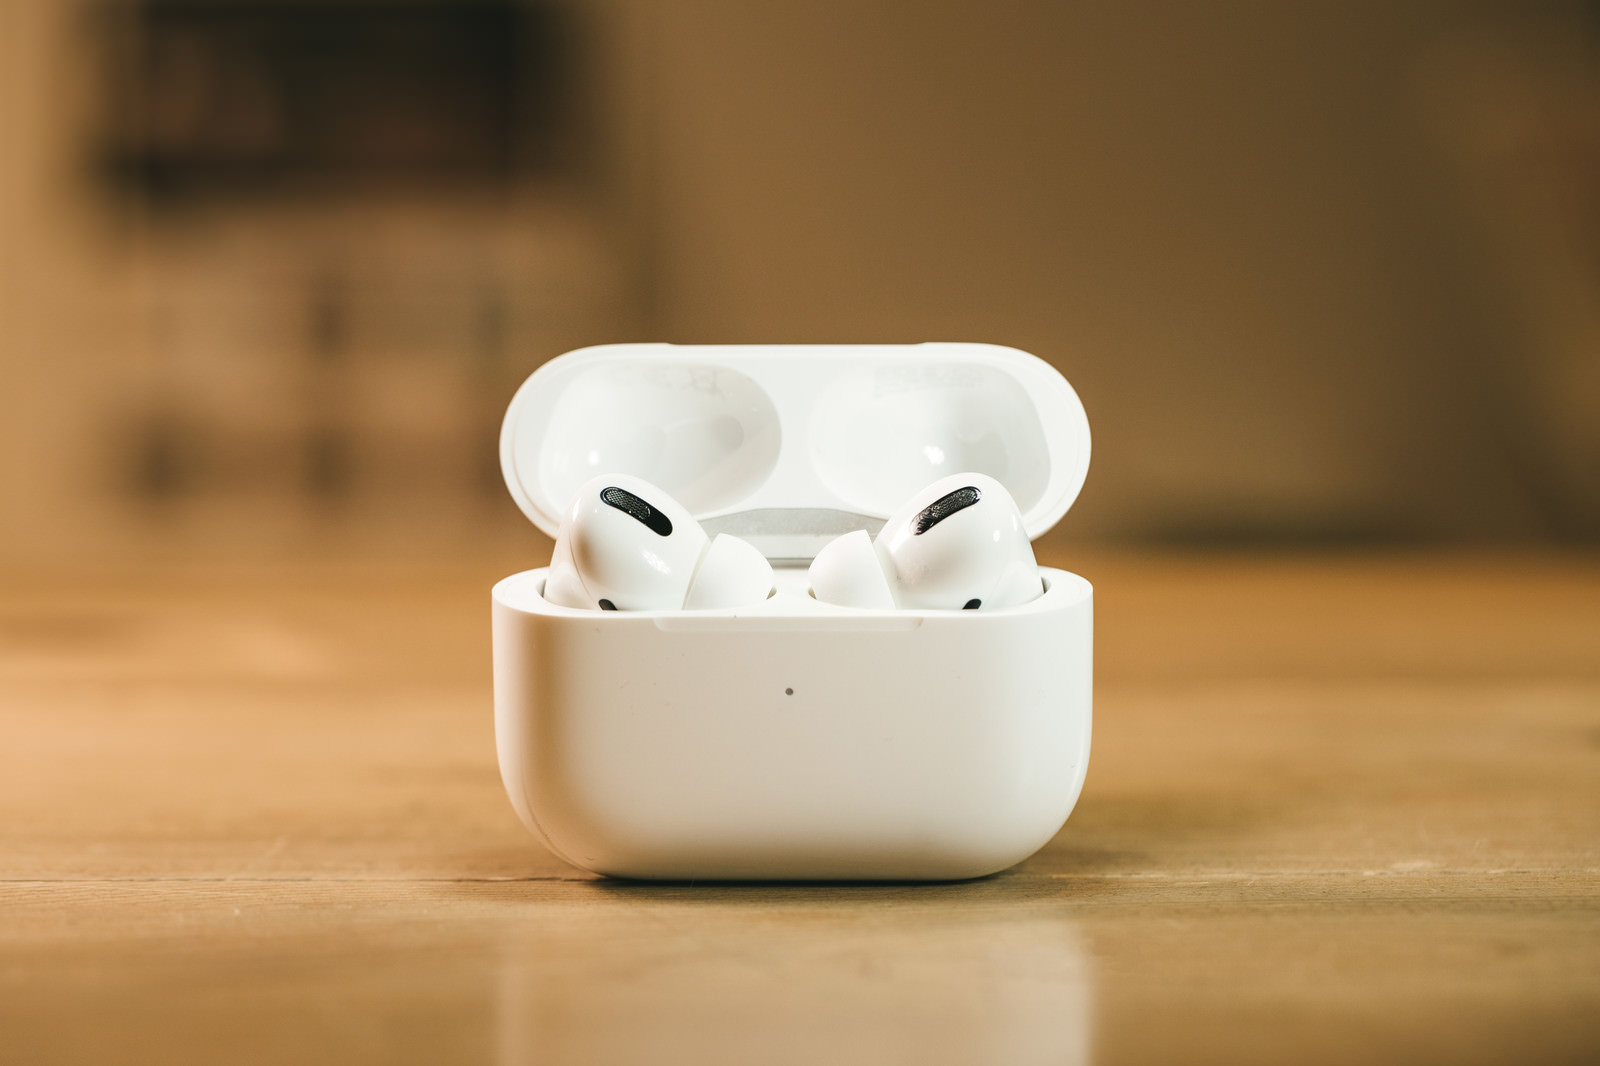 Airpods458A2947 TP V airpodspro